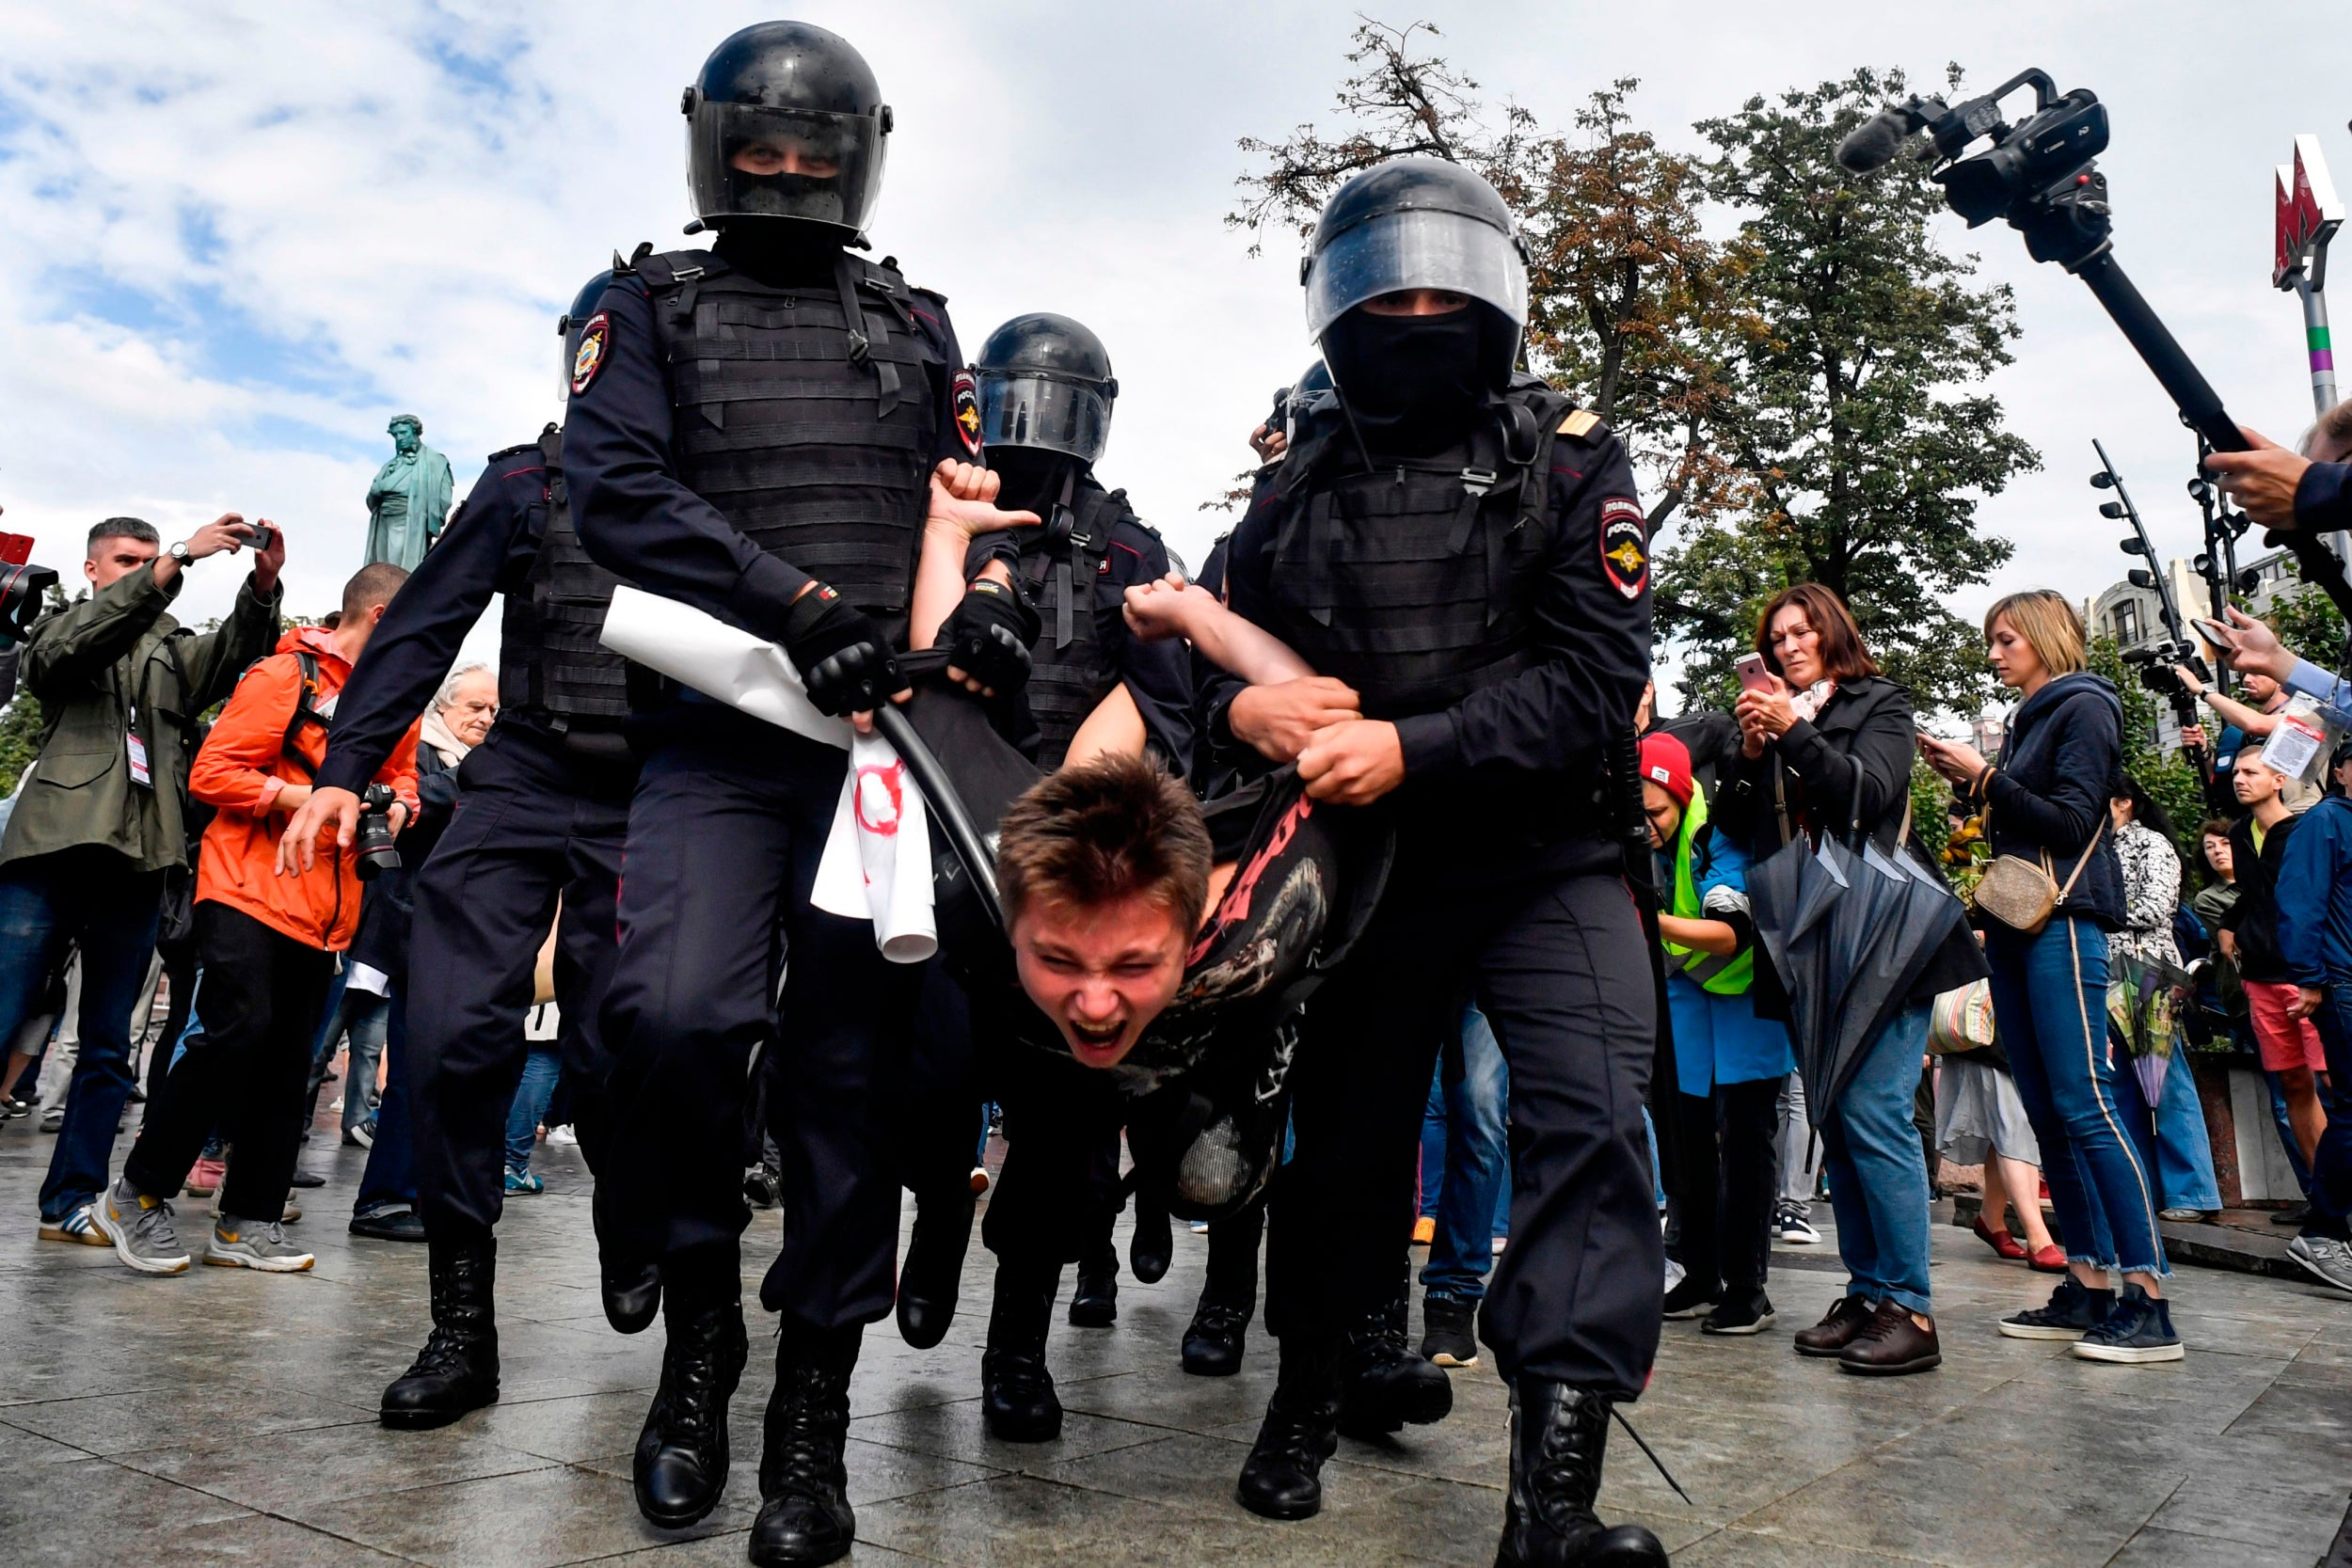 https://static.independent.co.uk/s3fs-public/thumbnails/image/2019/08/03/16/Moscow-protests-4.jpg